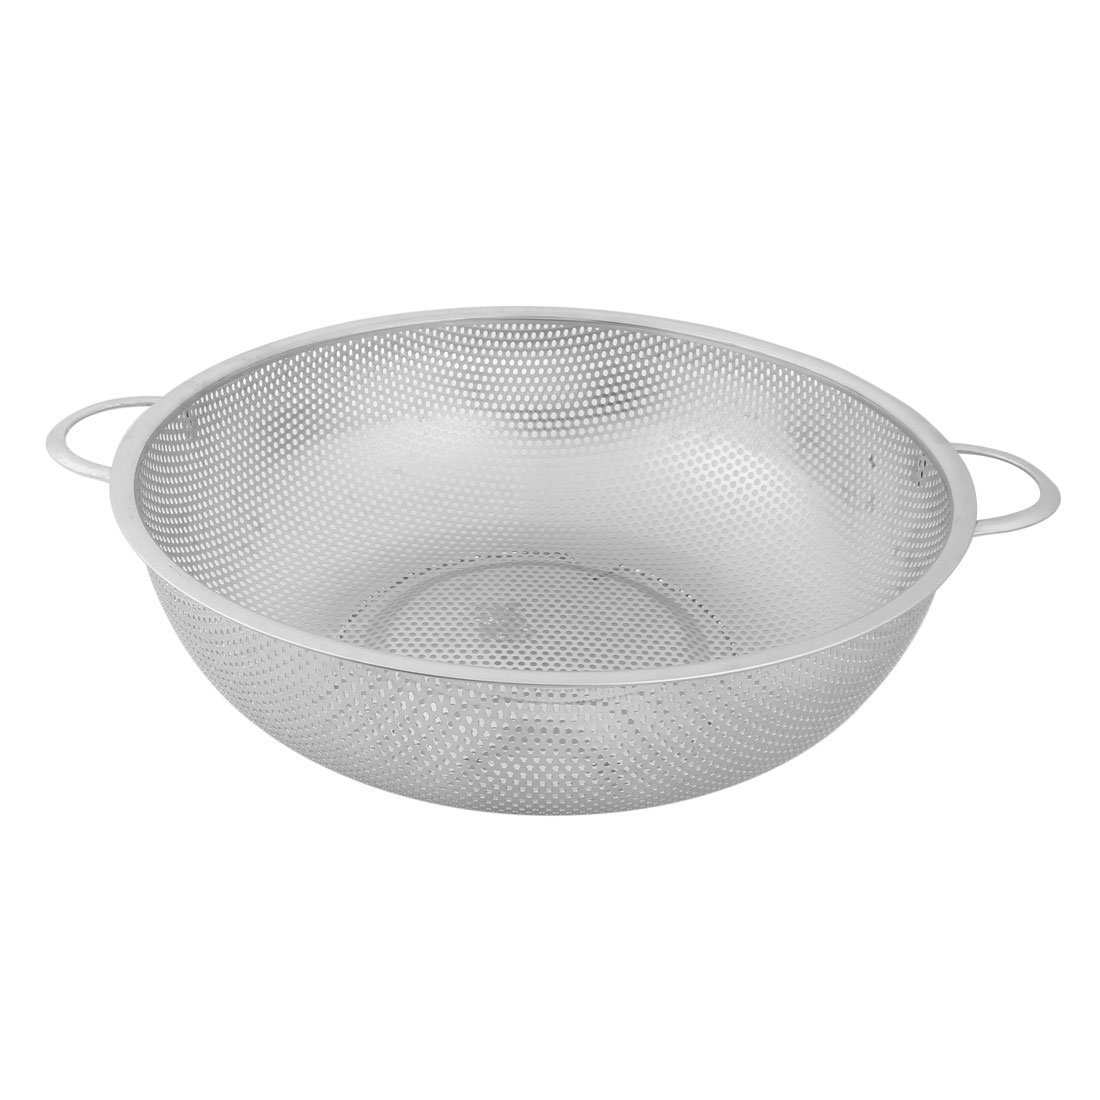 uxcell Stainless Steel Household Vegetable Fruit Washing Bowl Colander 28.5cm Diameter Silver Tone